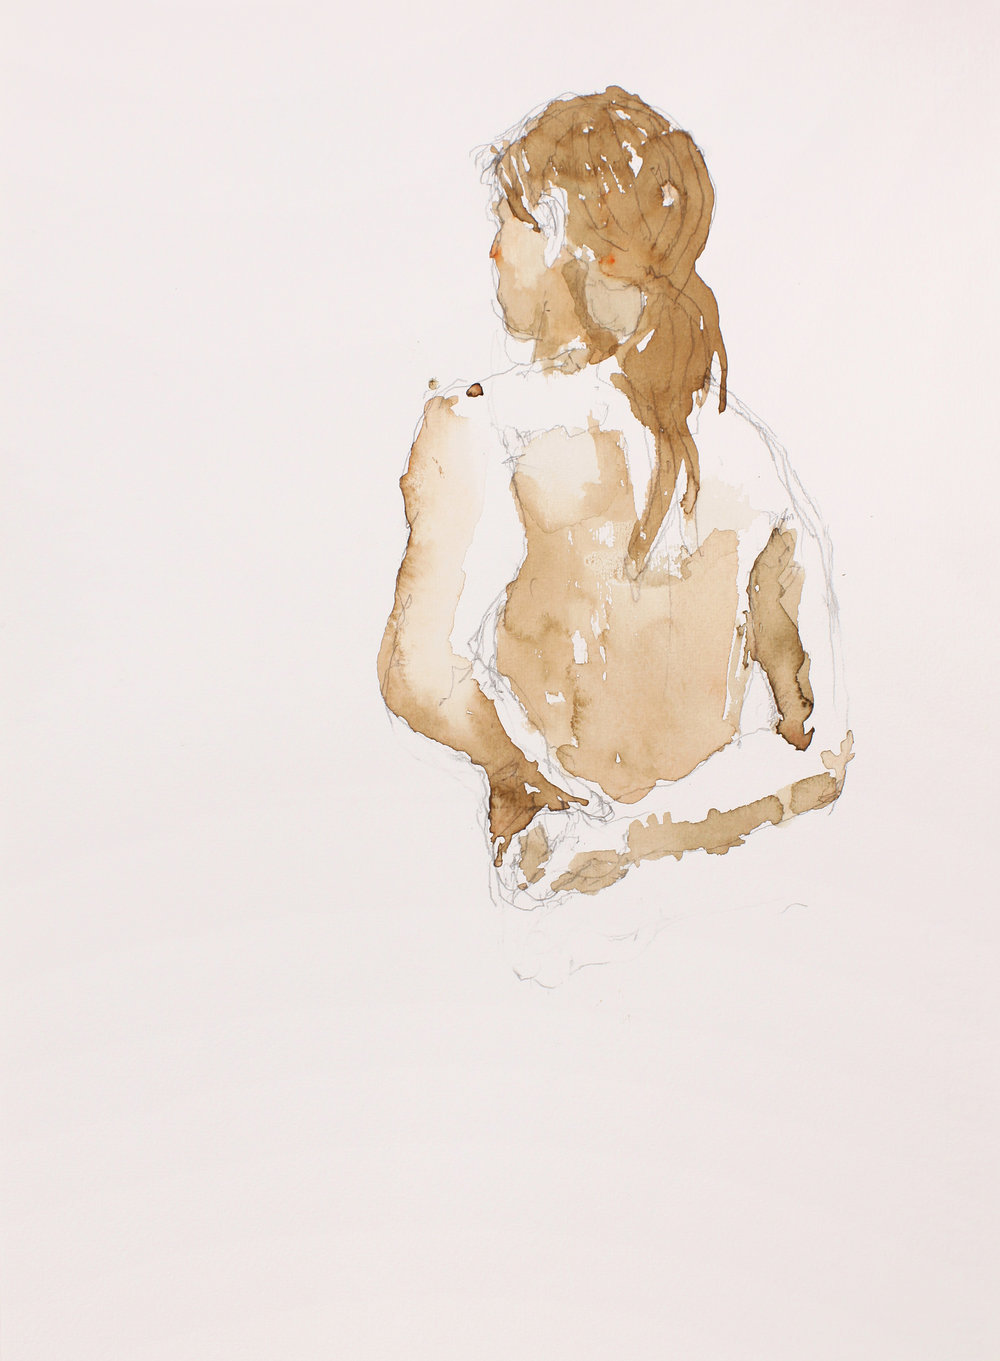 2006_Half_Length_Nude_with_Ponytail_From_Back_watercolour_and_pencil_on_paper_15x11inWPF444.jpg